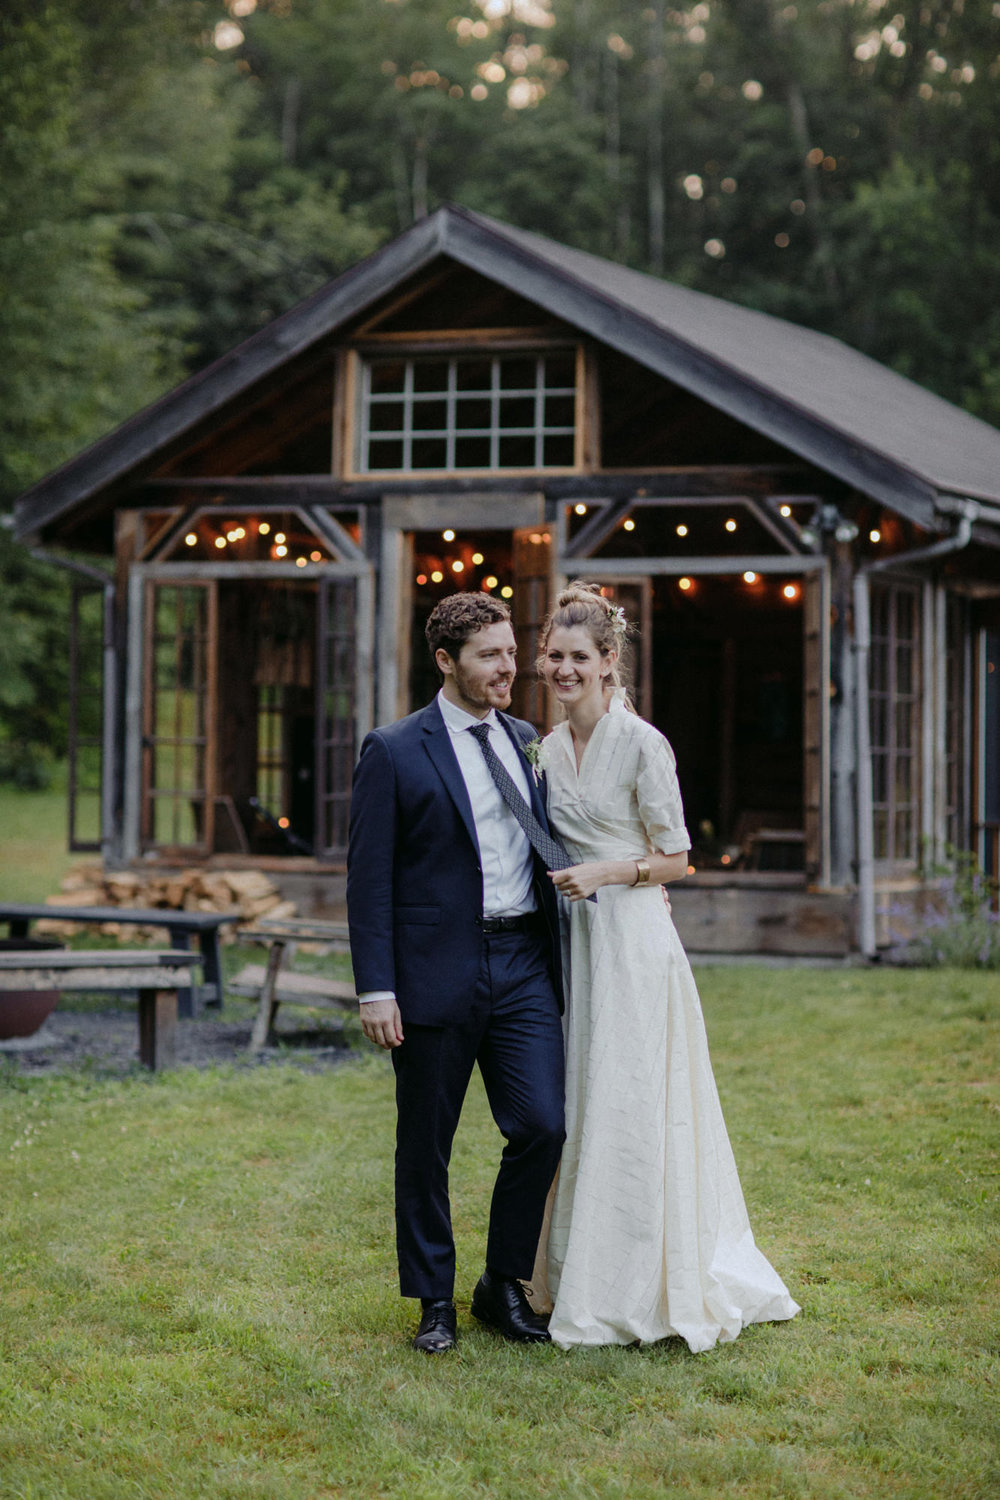 FOXFIREMOUNTAINHOUSE_CATSKILLS_WEDDING_SAMMBLAKE_PJW_0784.jpg